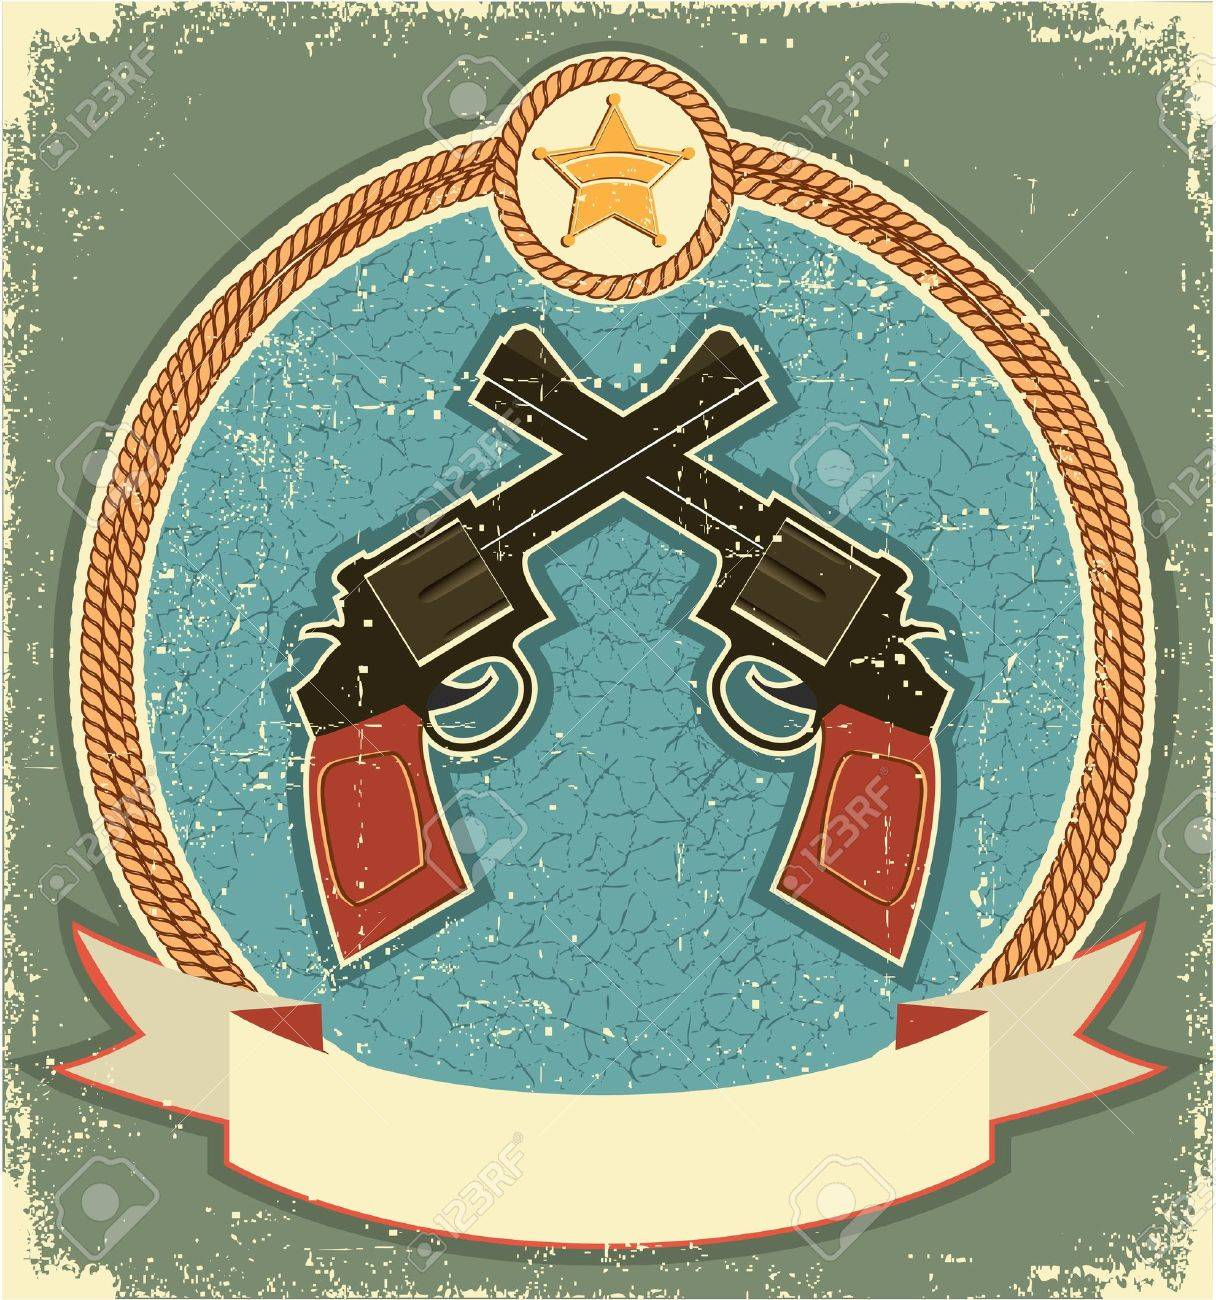 Western revolvers and sheriff star.Vintage label illustration for text Stock Vector - 12331145